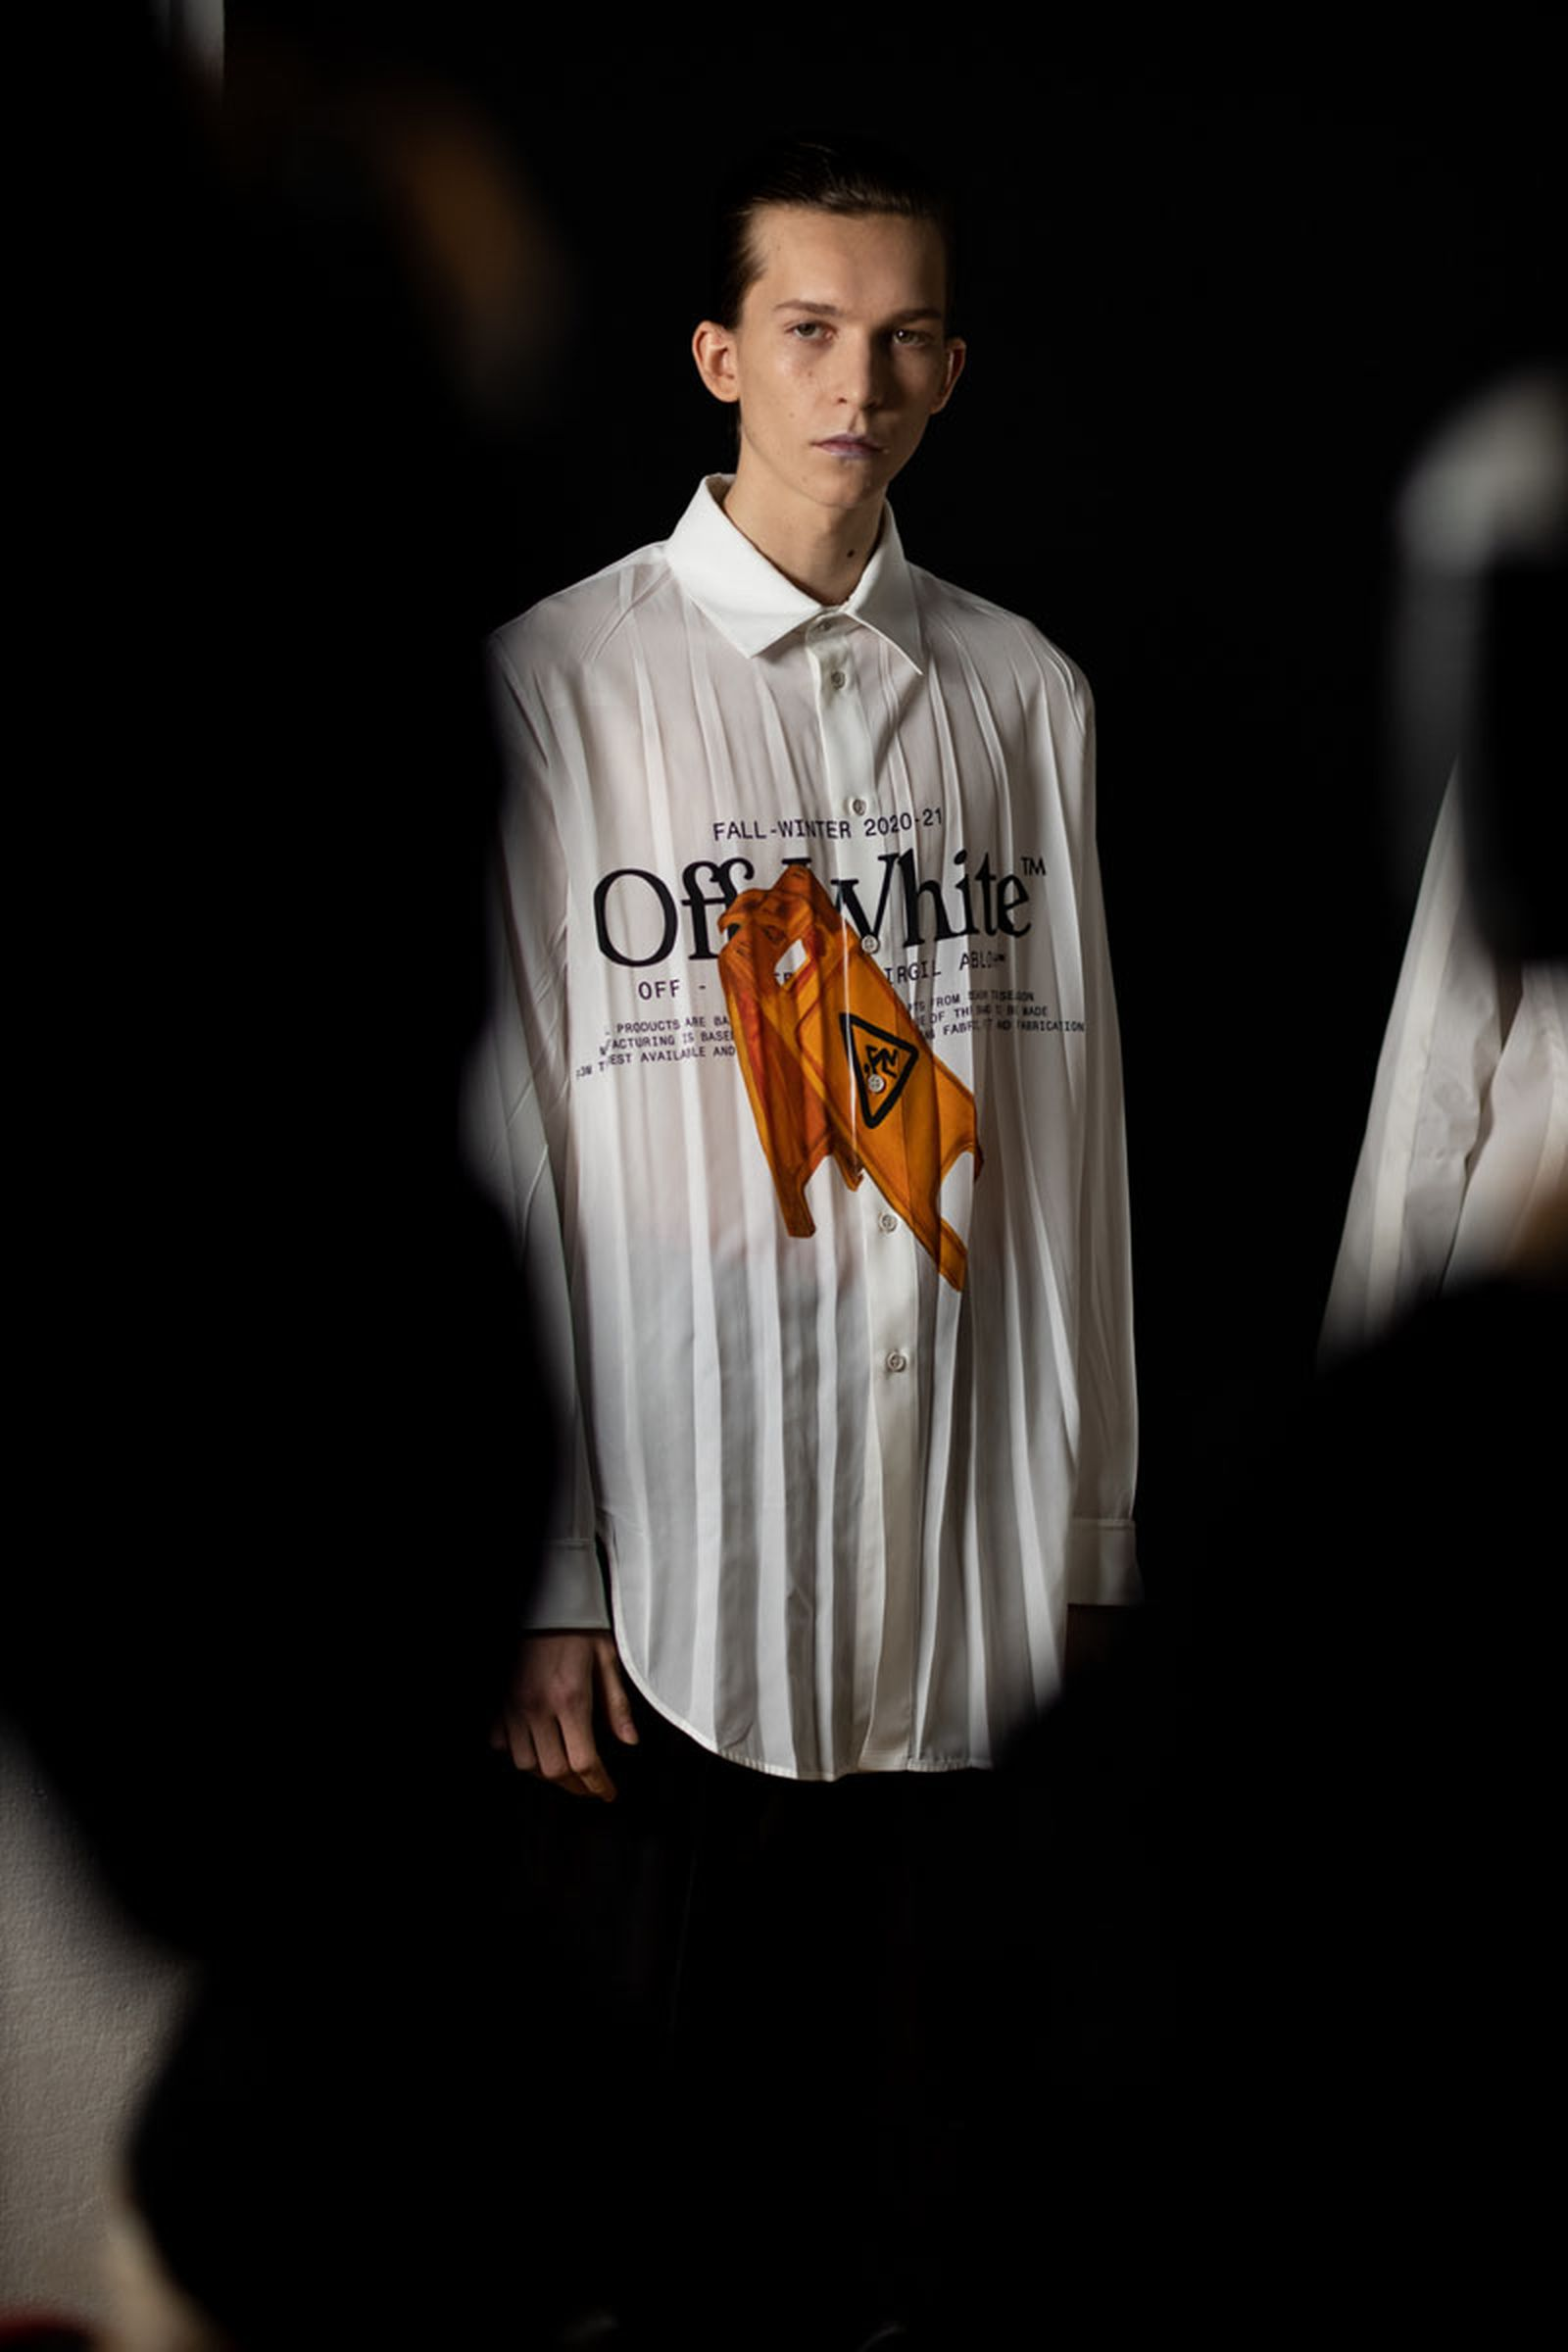 off-white-fall-winter-2020-collection-review-018